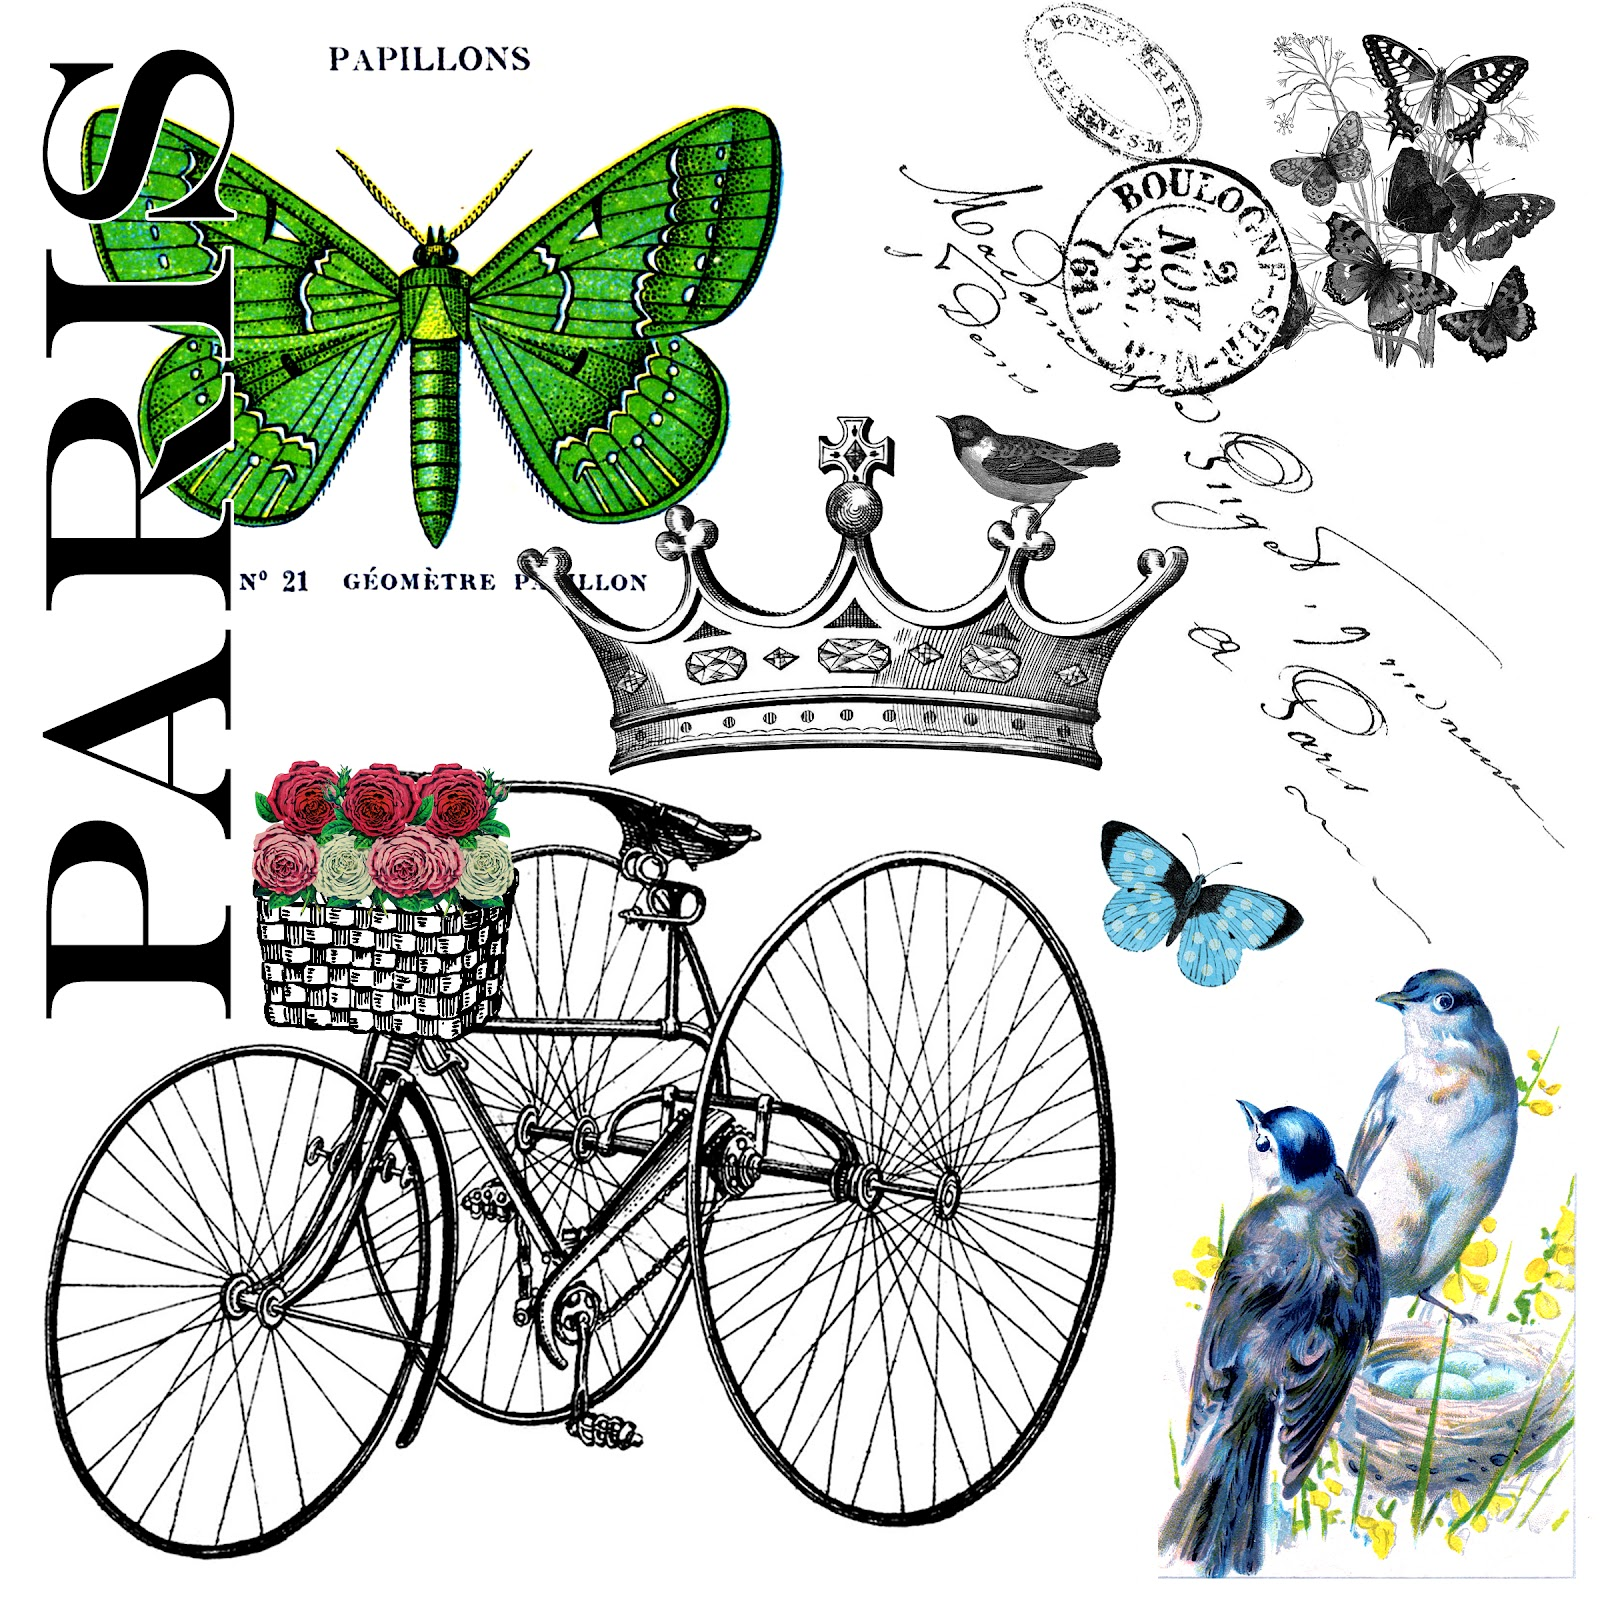 A Paris Apartment And A Paris Graphic: The Party Continues And A Paris Garden Free Graphic For